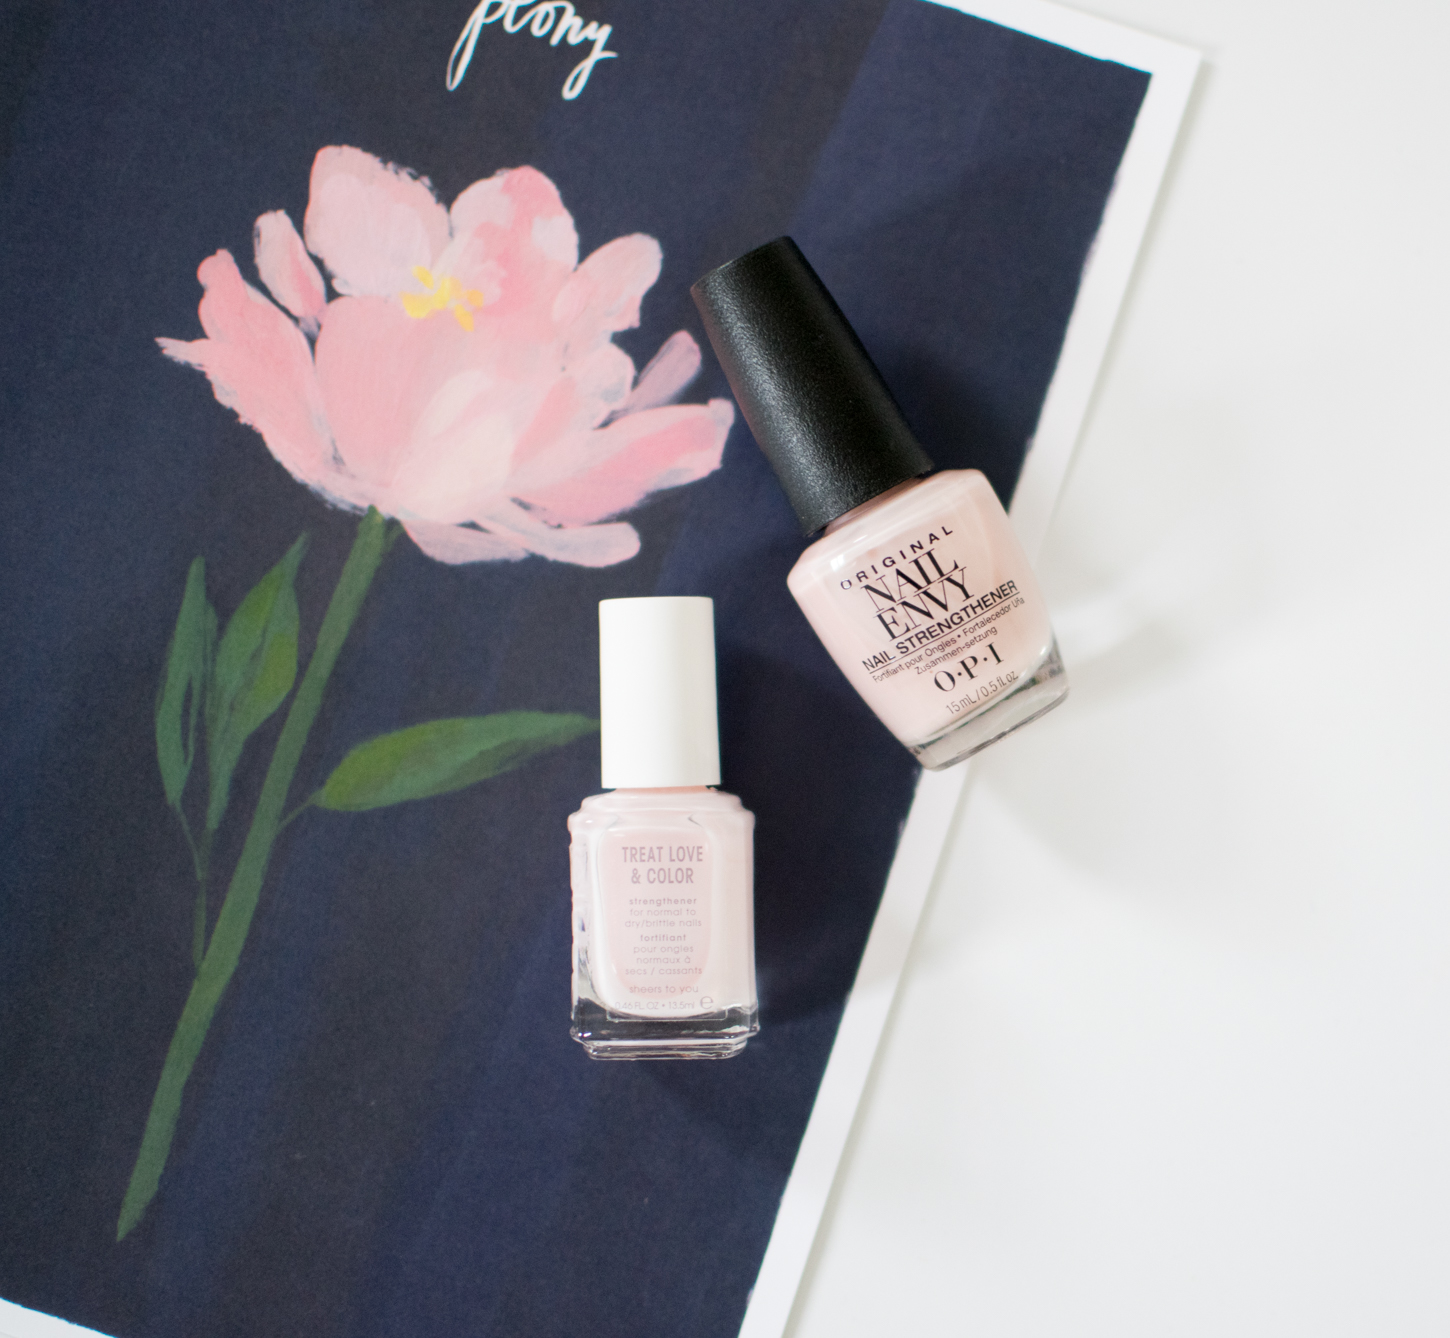 Your nails but better the small things blog a new kind of nail polish hit the shelves this year and i was thrilled about it i love bright nail colors along with a healthy mix of grey and taupe too solutioingenieria Image collections